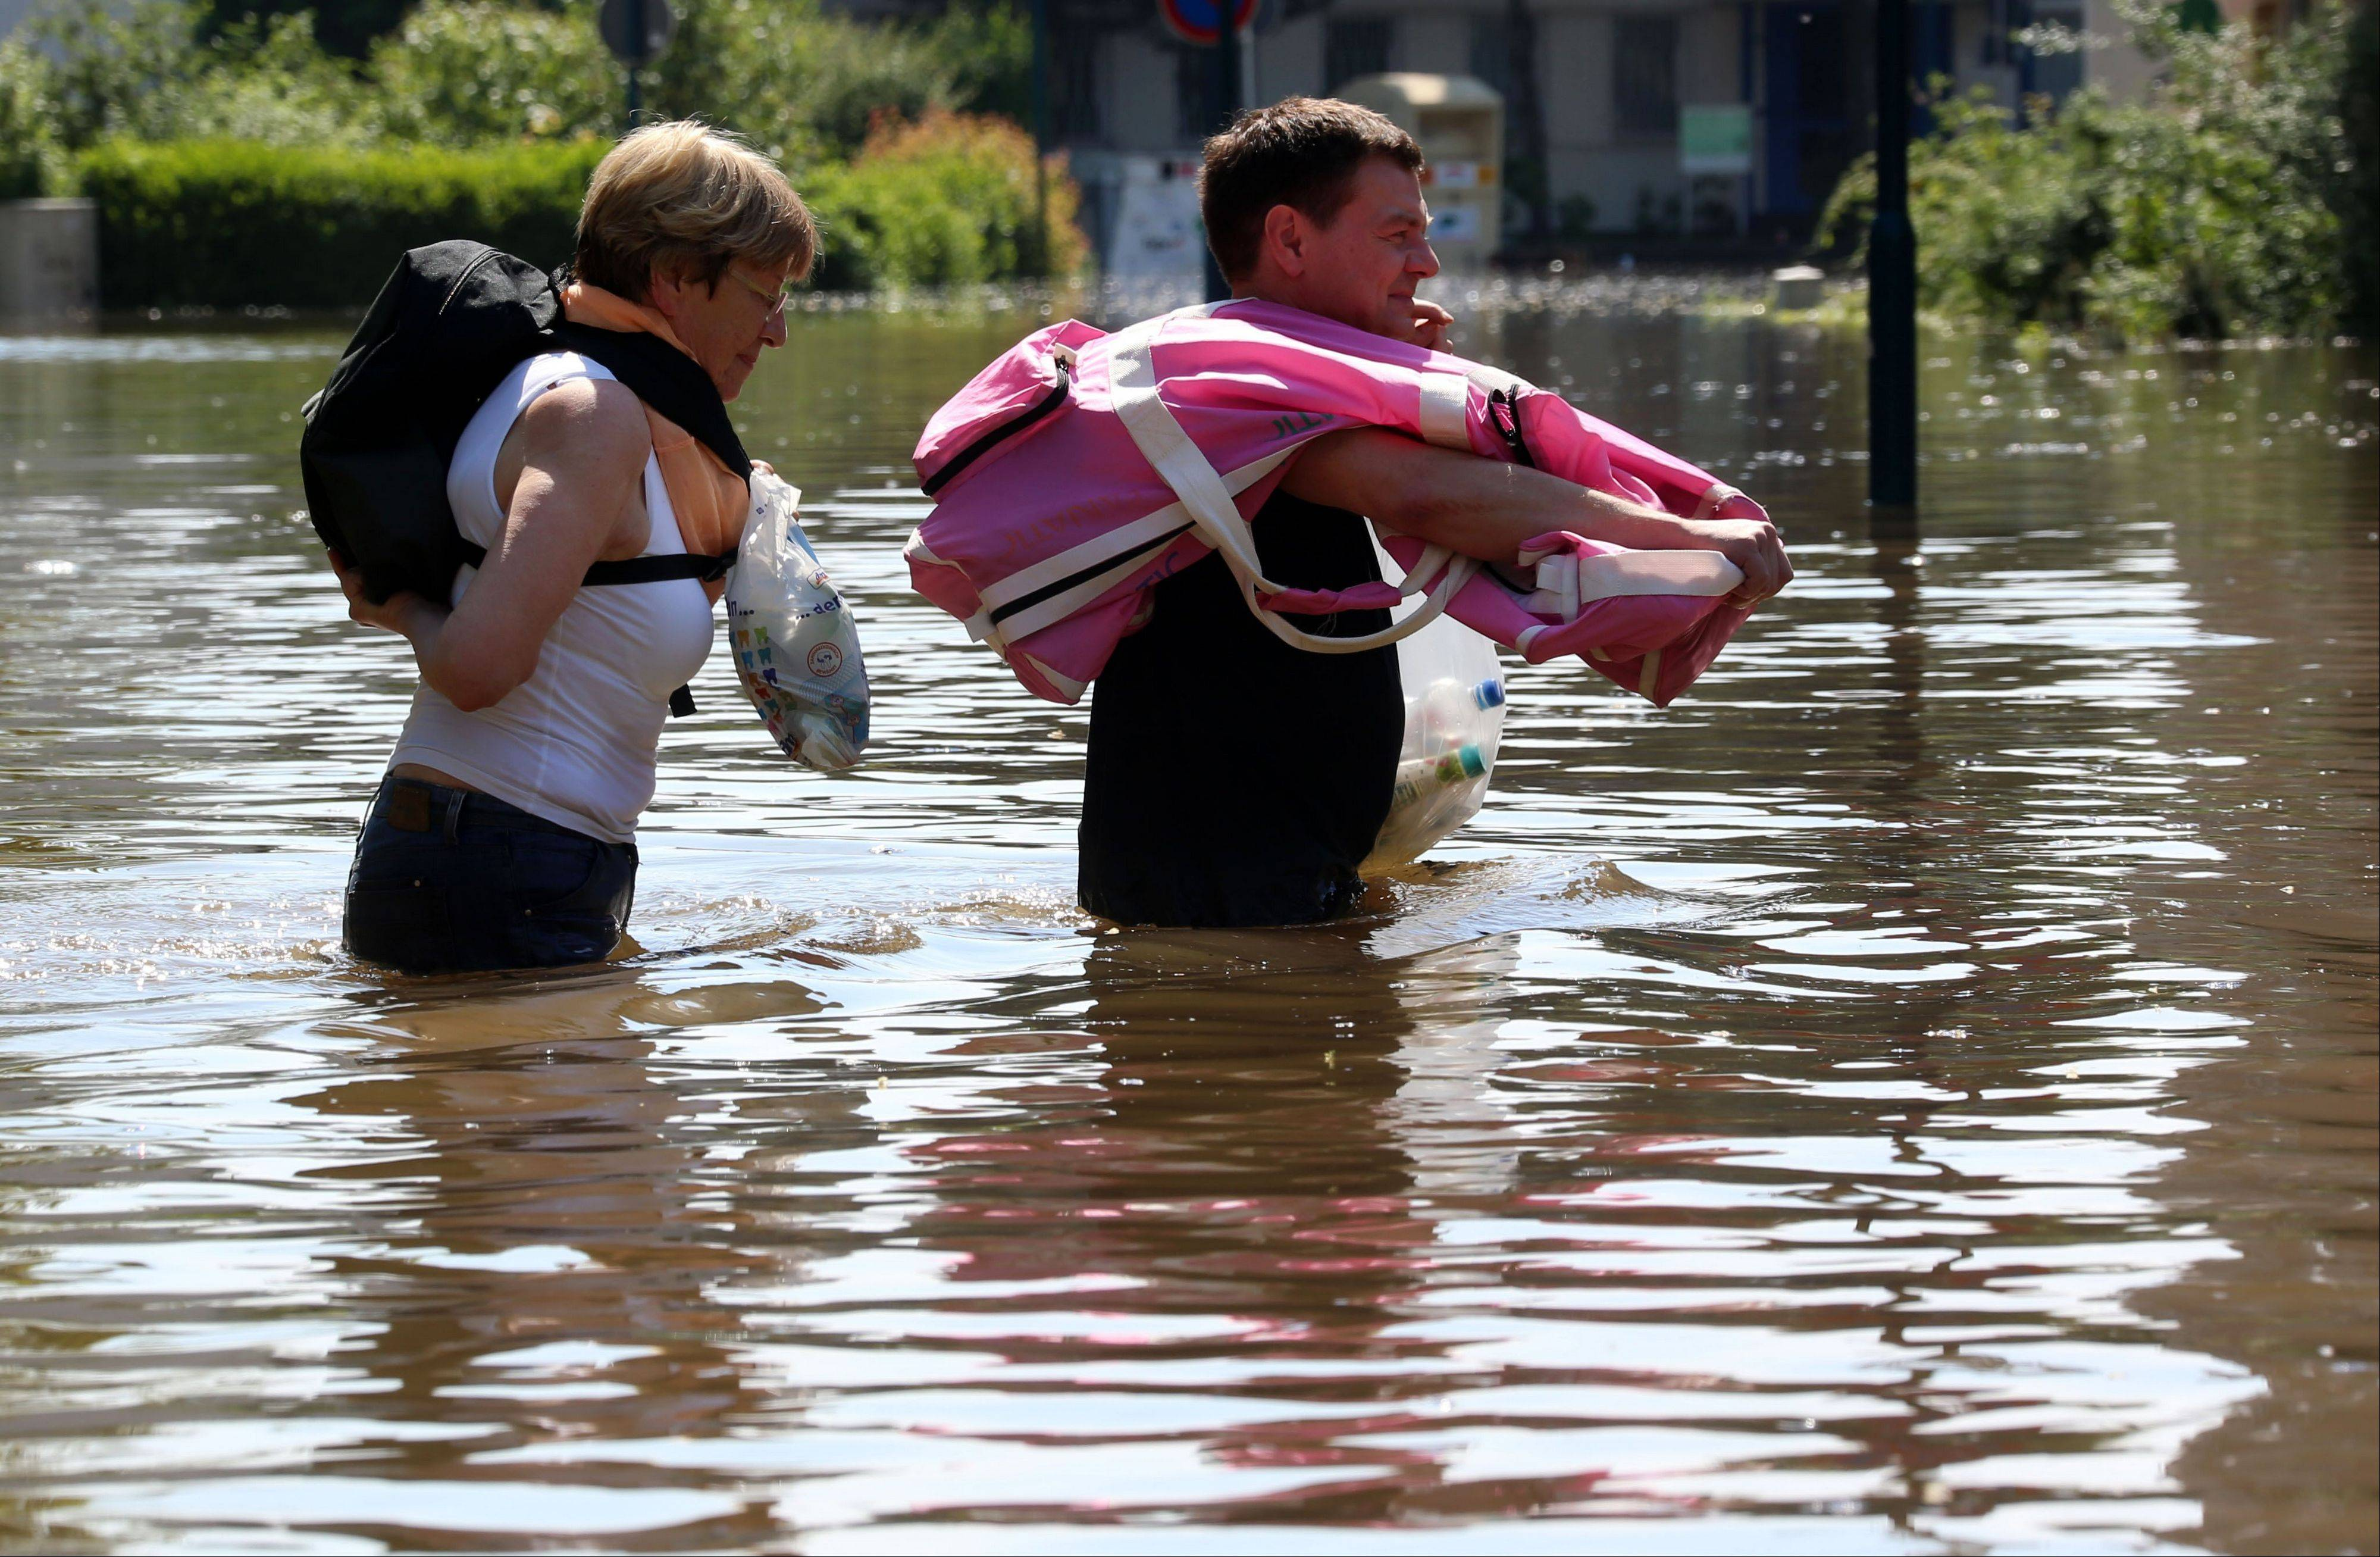 Inhabitants carry belongings through the floods of river Elbe in Magdeburg, eastern Germany, Saturday June 8. German news agency dpa said people in Magdeburg in Saxony-Anhalt were anxiously awaiting the crest of the Elbe river on Saturday, while residents further upstream were starting to clean up the debris that was left along the river. In Magdeburg, authorities evacuated a nursing home and turned off electricity in several parts of the city. High water levels were also reported from Hungary, Slovakia and the Czech Republic, while thousands of people in Austria were busy shoveling away the mud left by the receding floodwaters of the Danube.